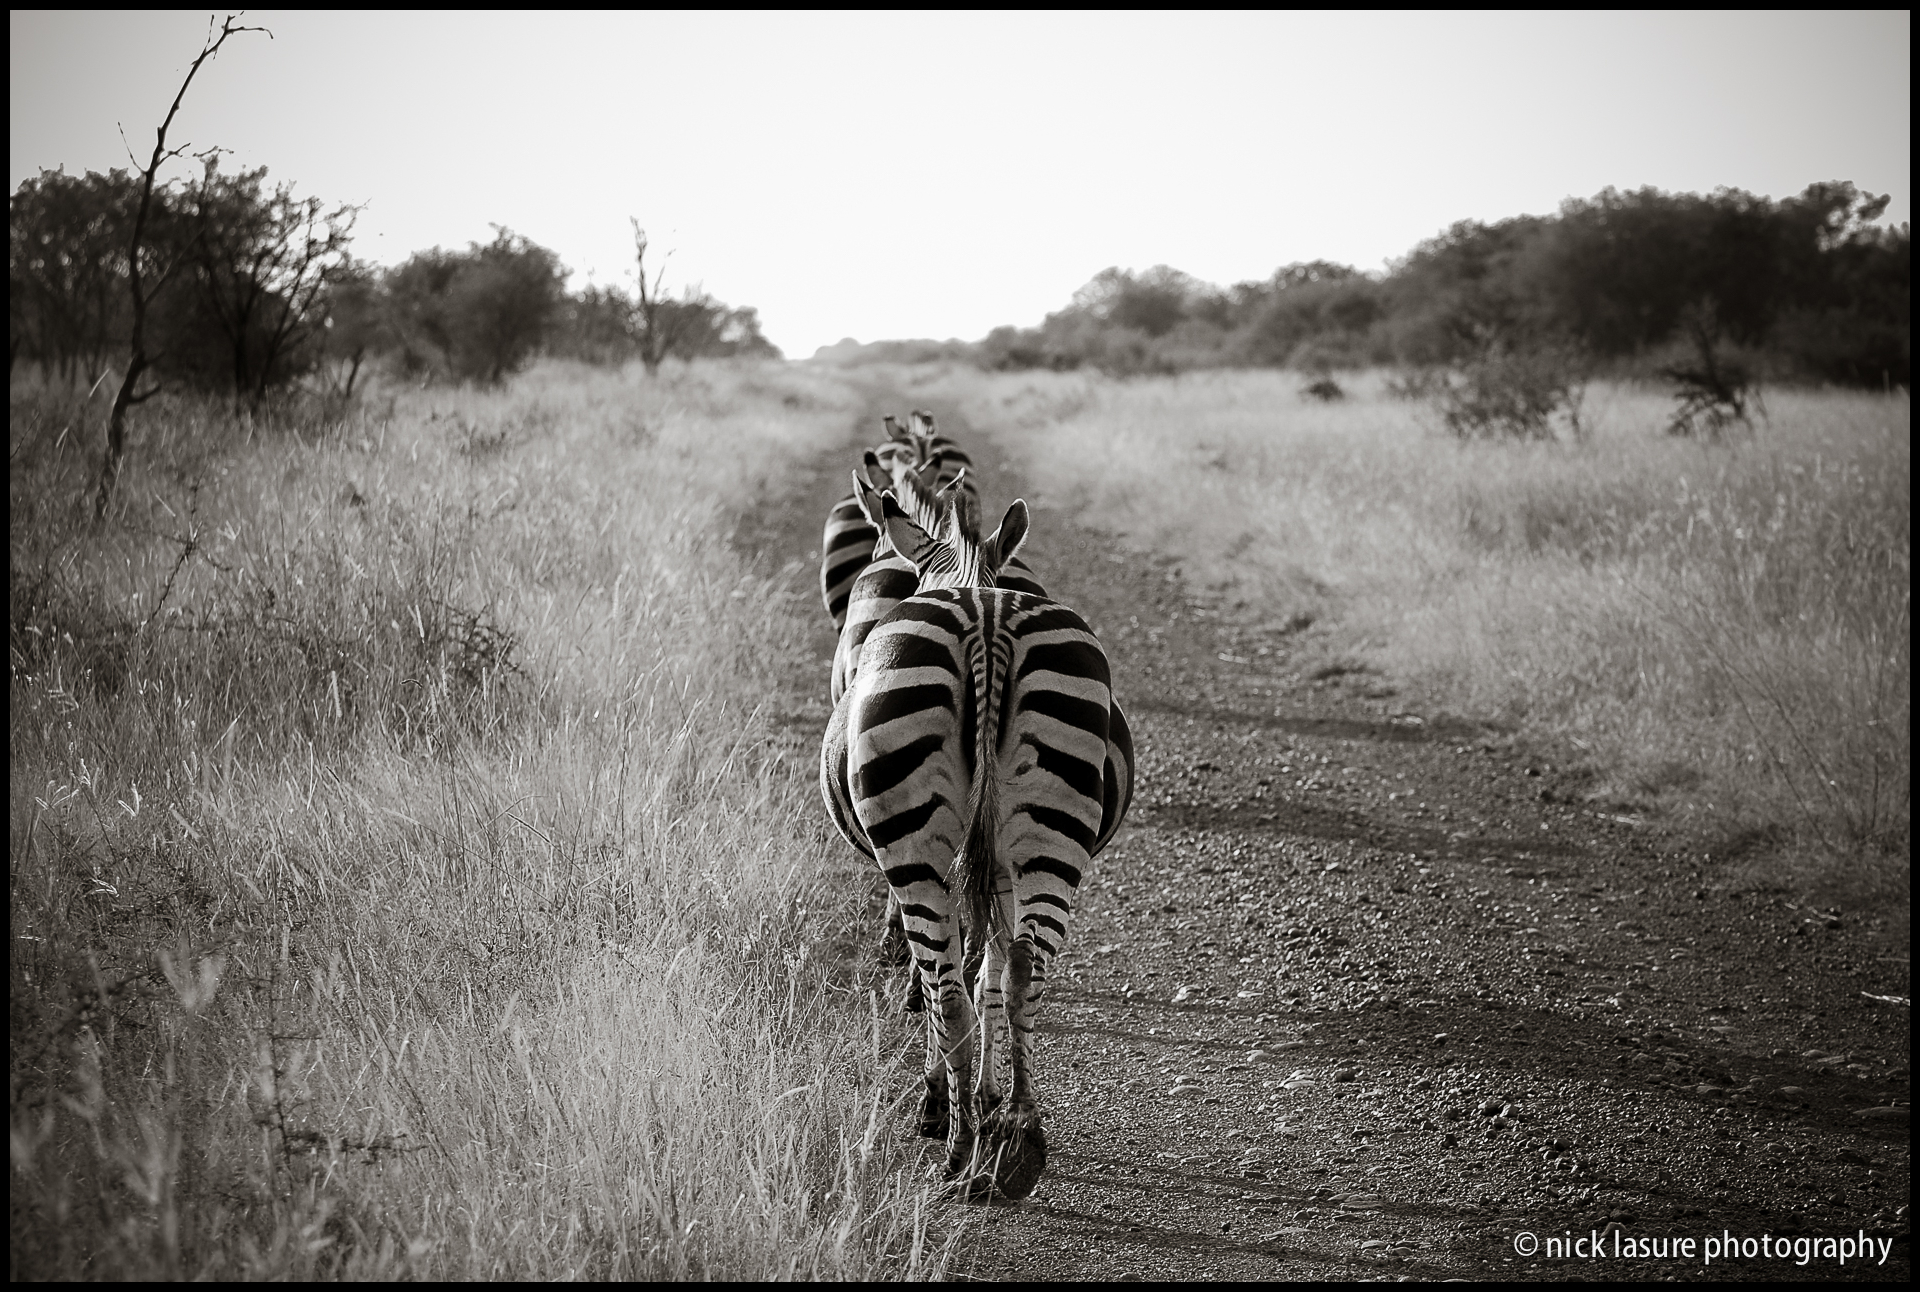 Zebras during 'rush hour' in Madikwe, South Africa // Nikon D40X